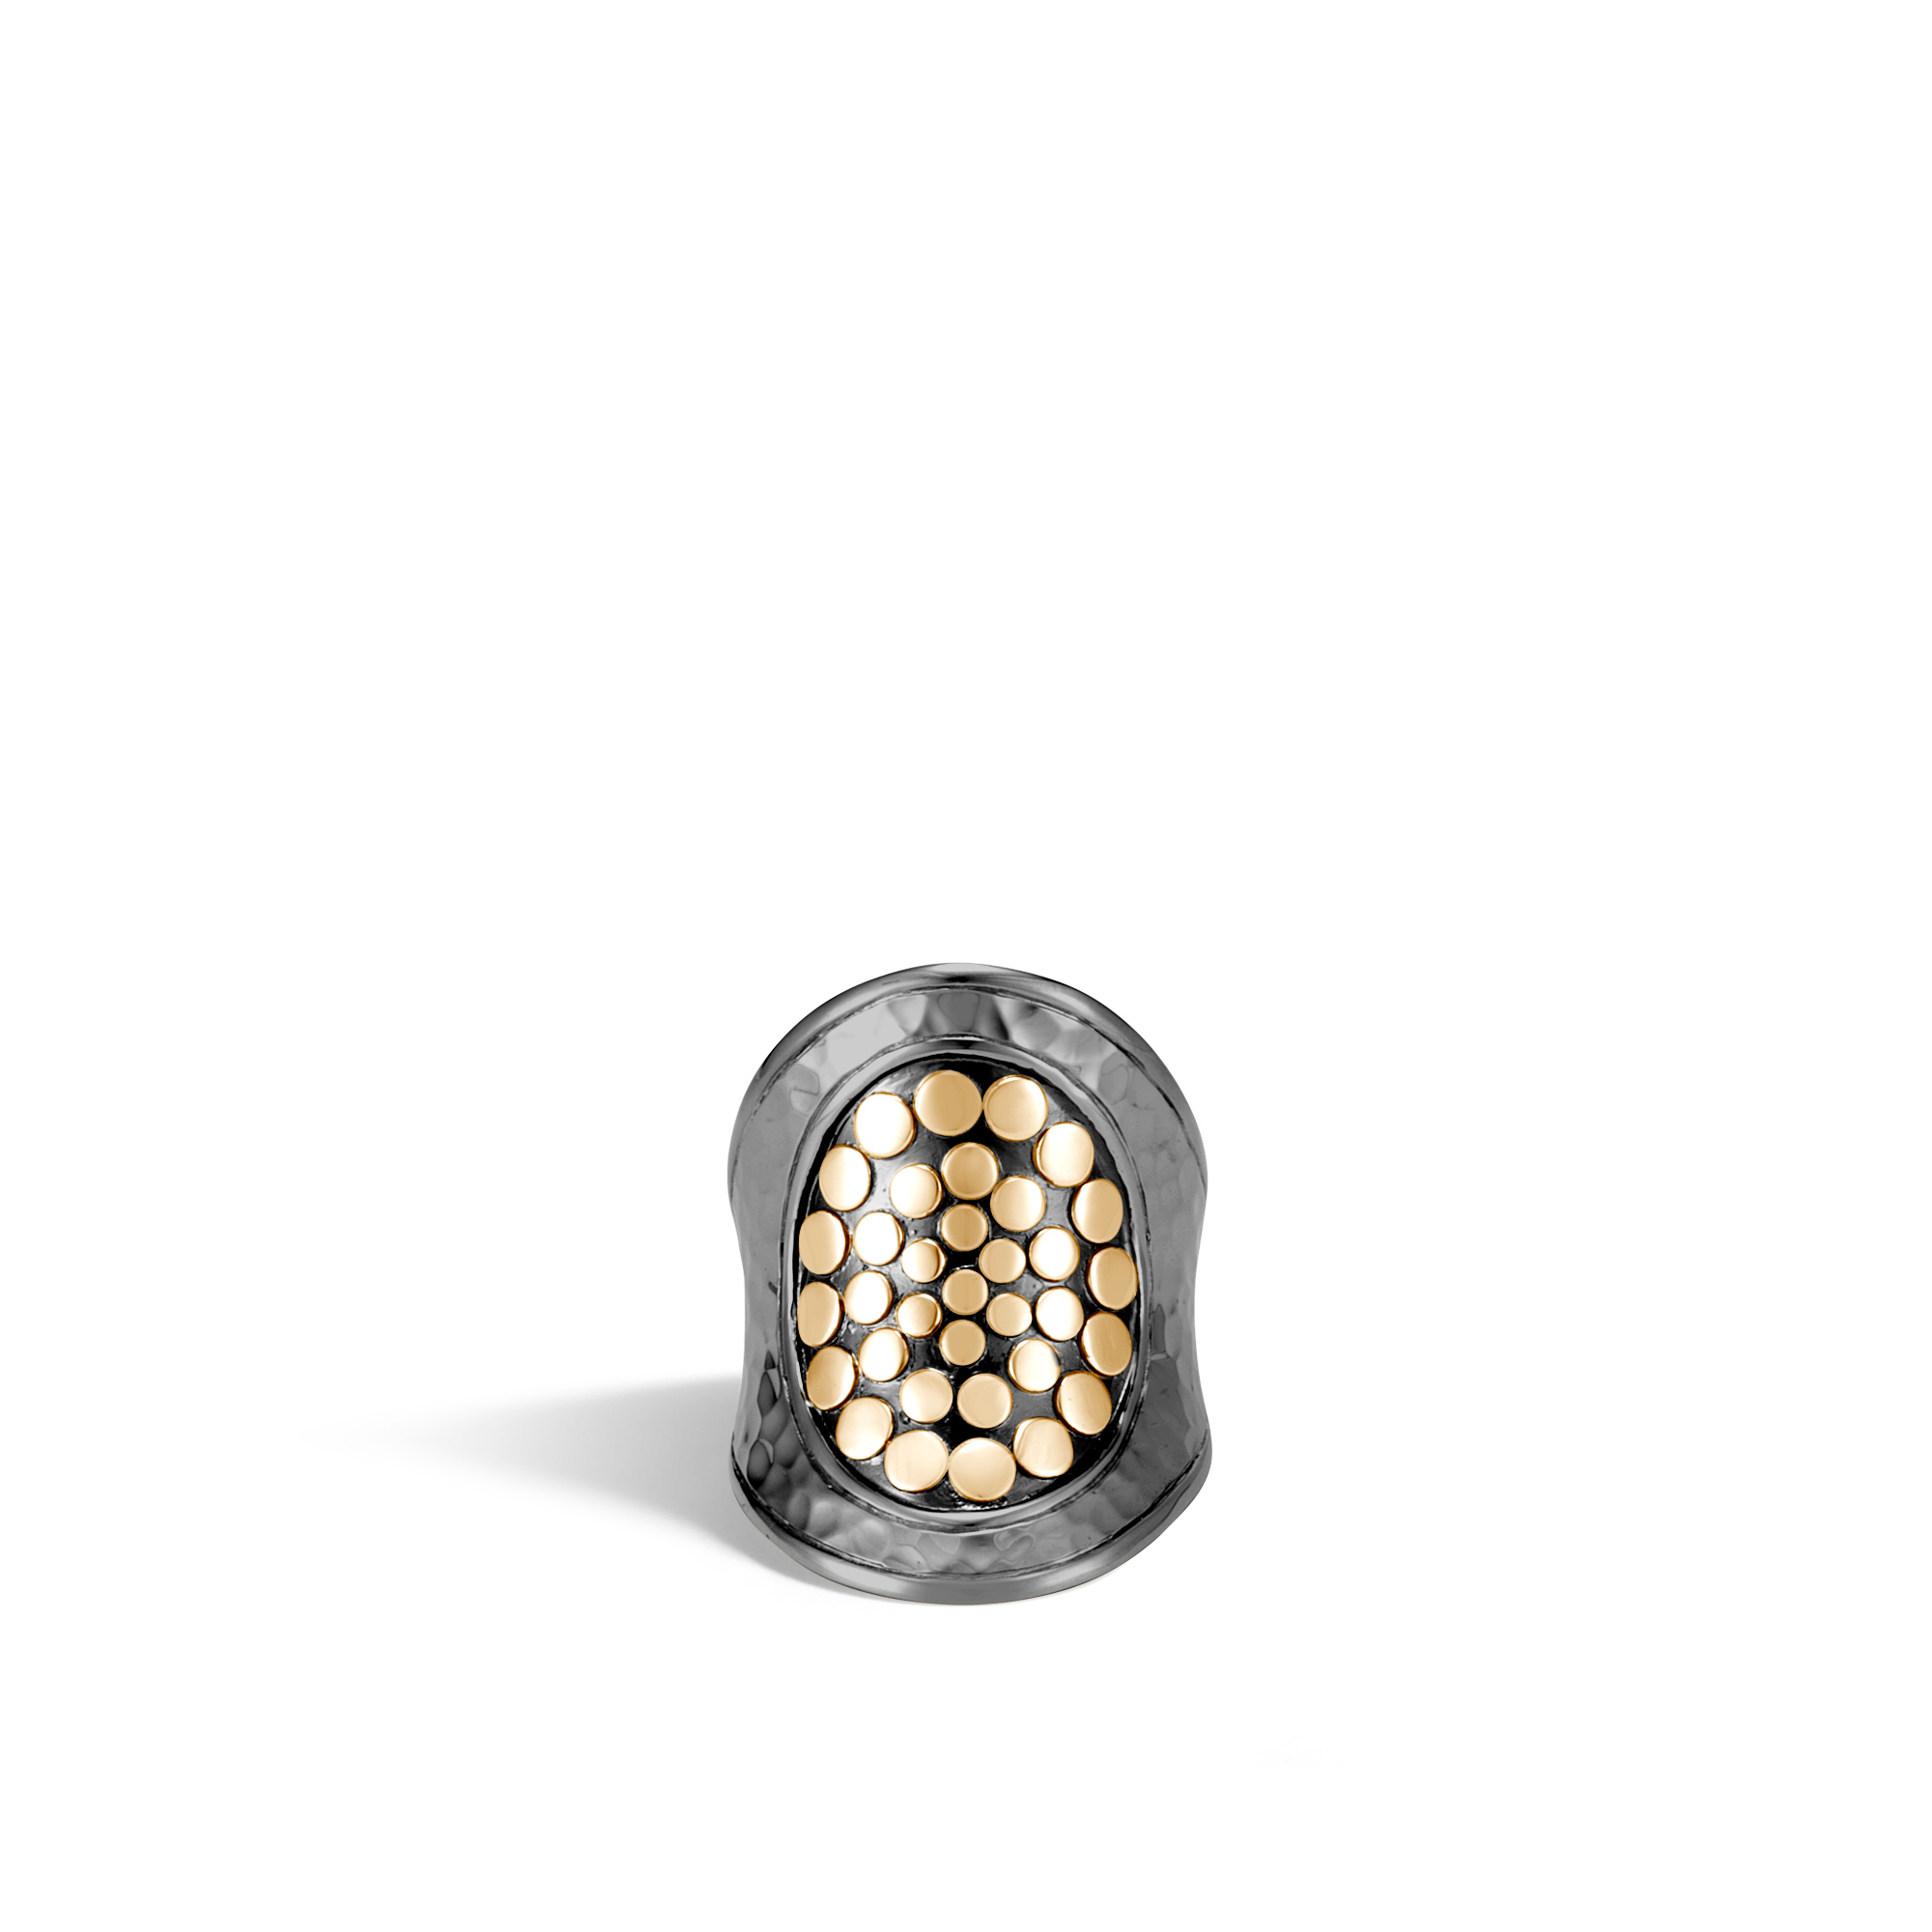 Dot Saddle Ring in Blackened Hammered Silver and 18K Gold, , large